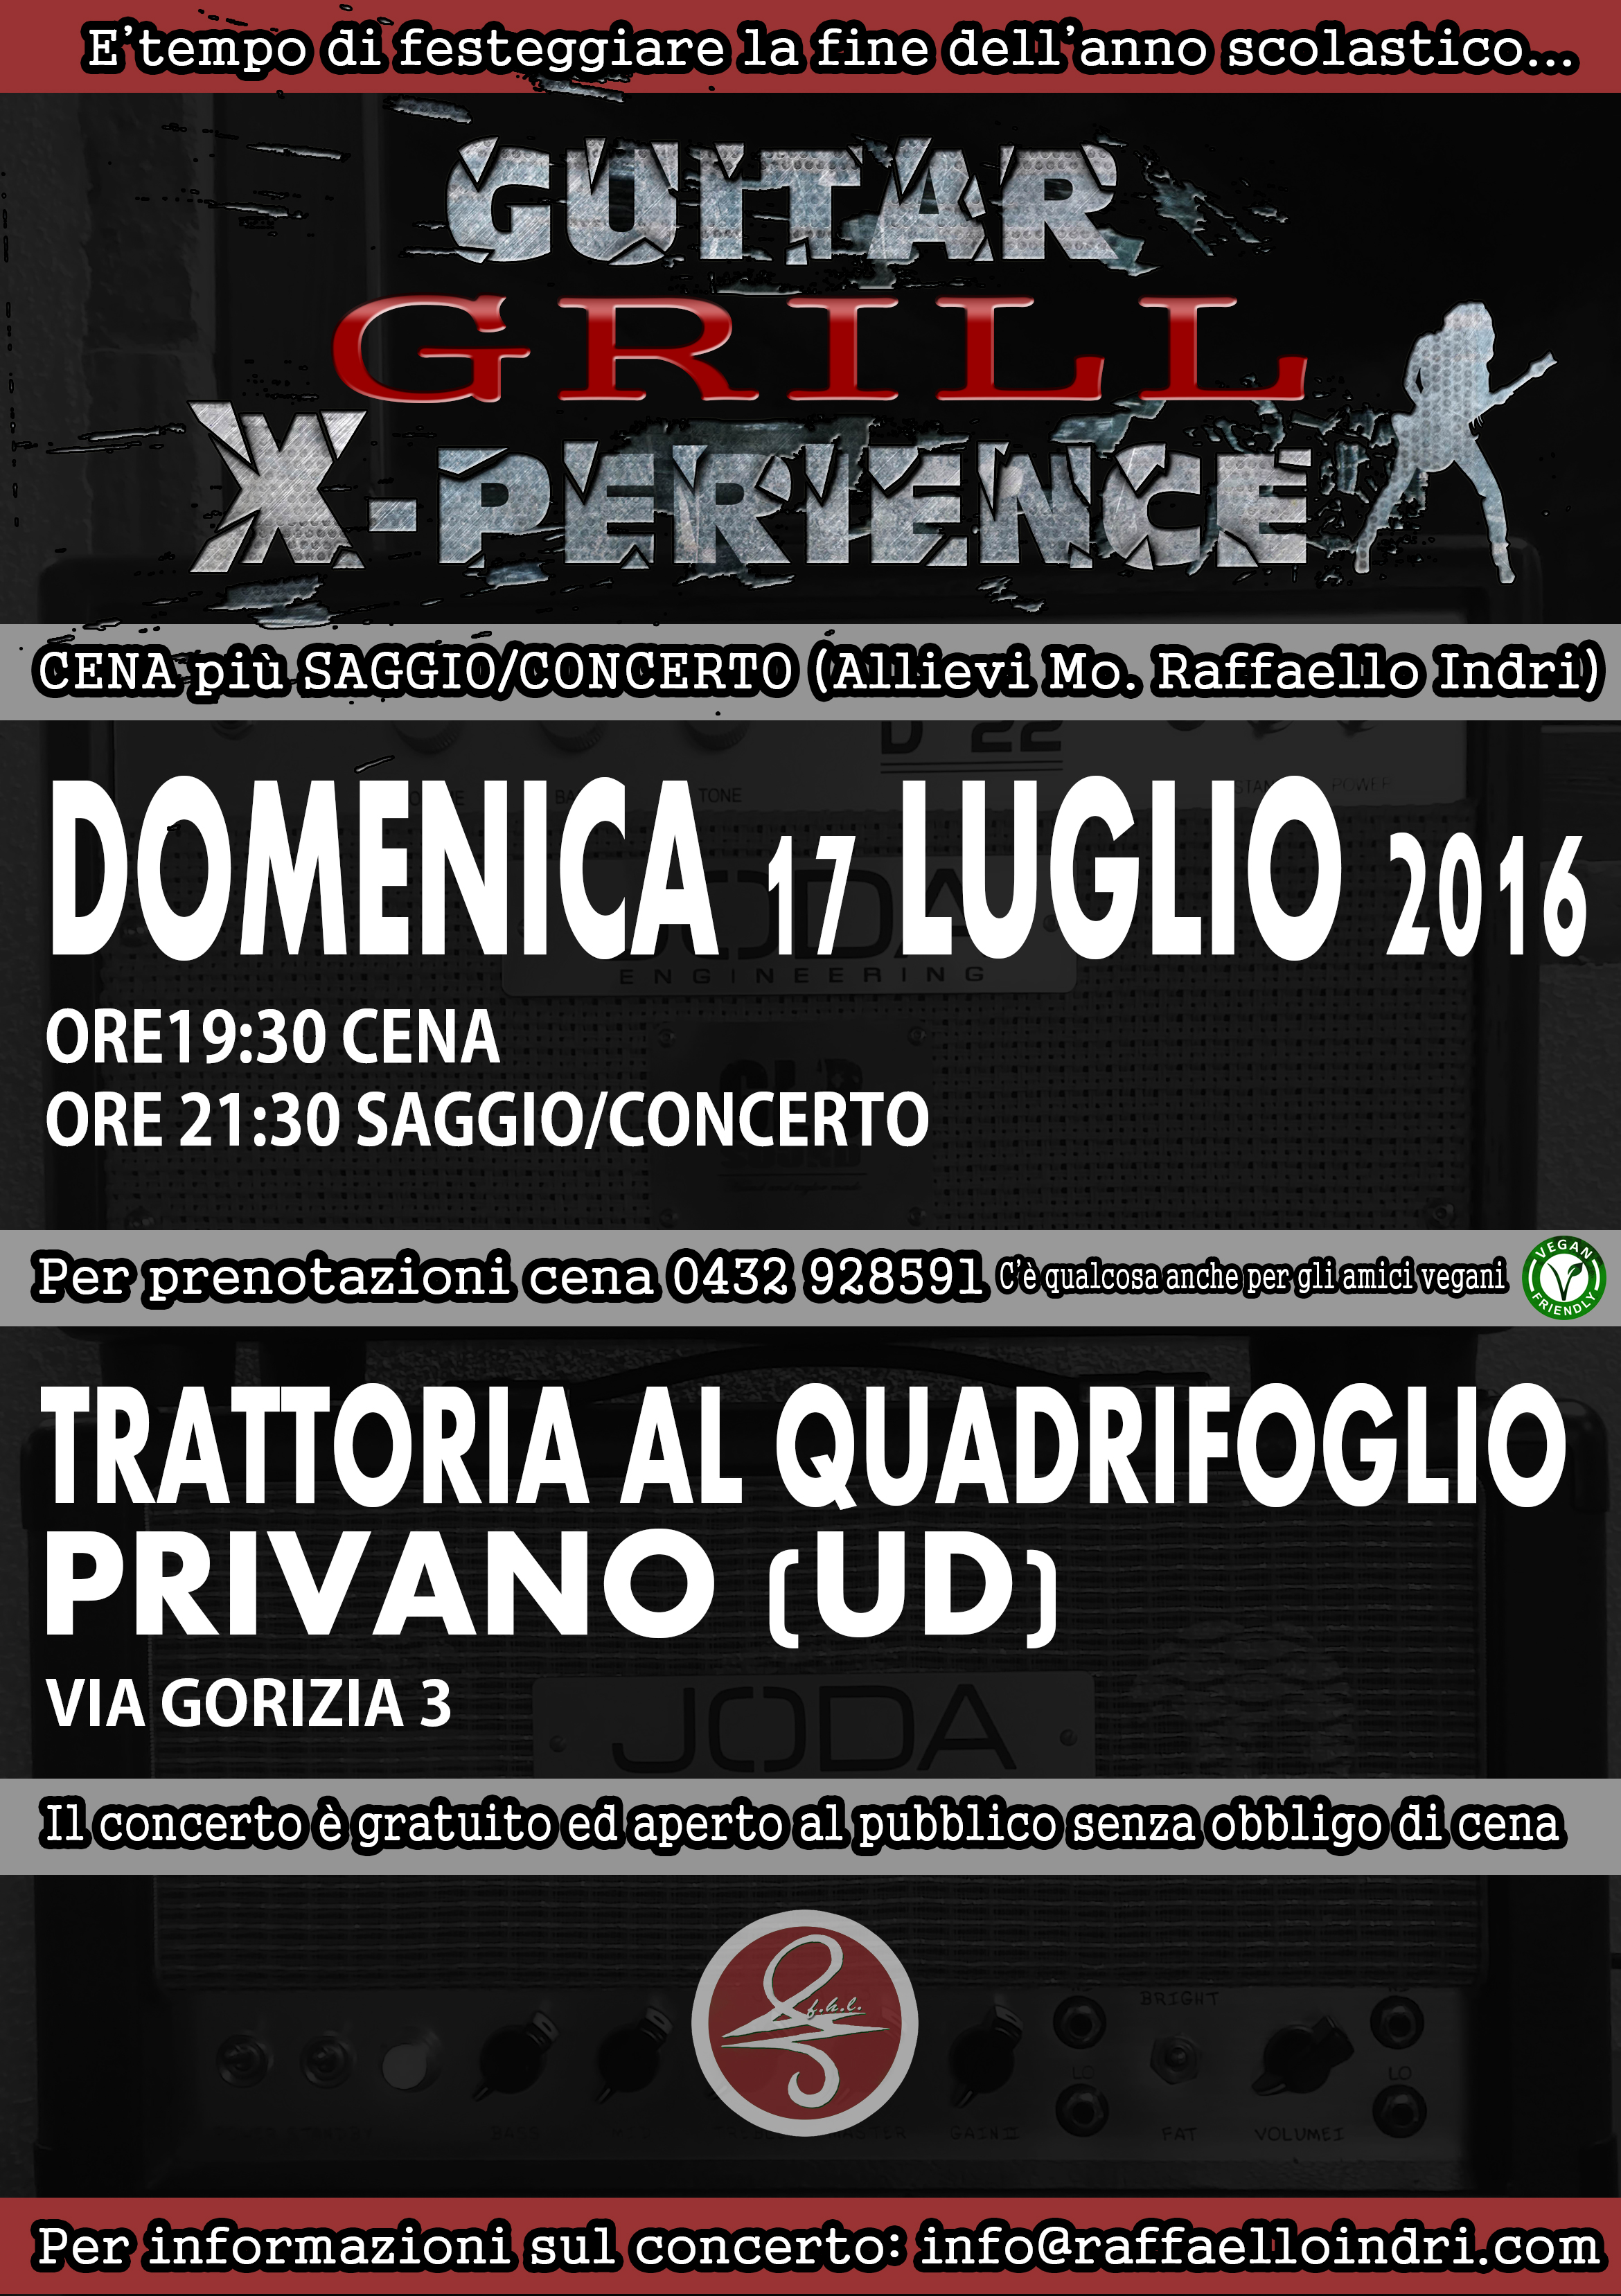 GUITAR GRILL X-PERIENCE 2016